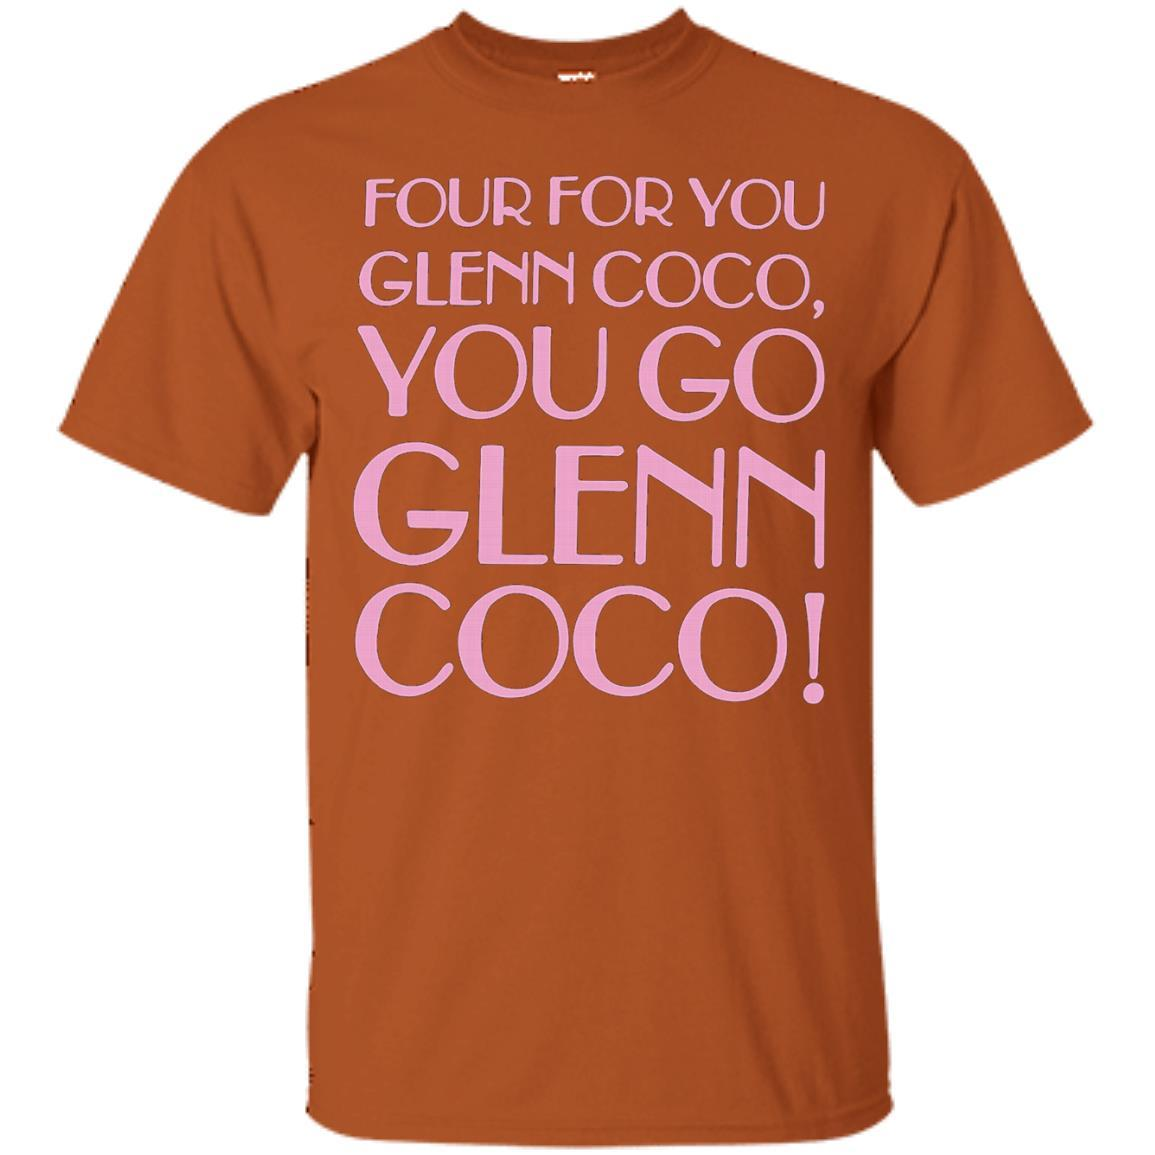 Funny Tshirt - Four For You Glenn Coco Tshirt - T-Shirt